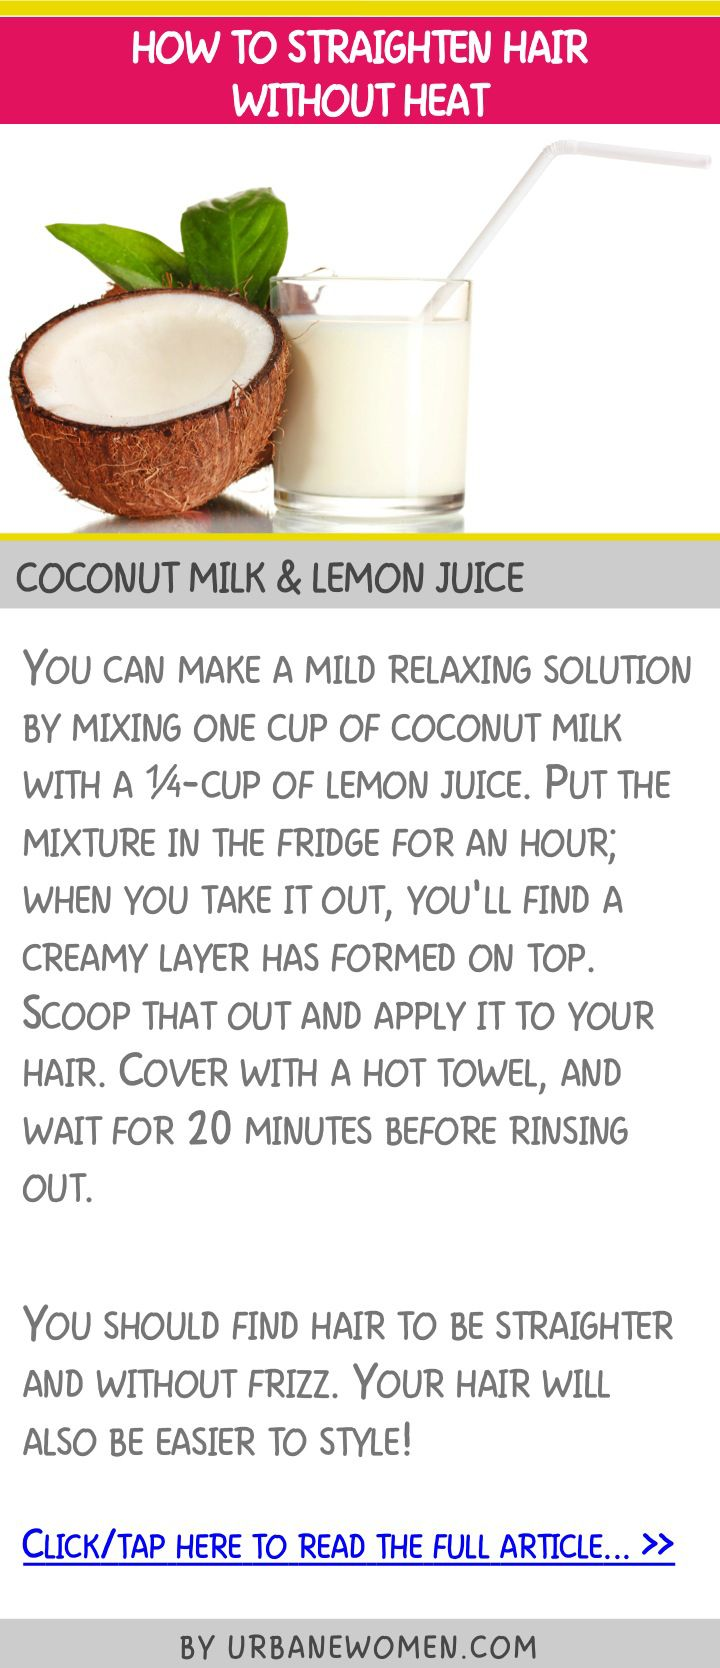 How to straighten hair without heat - Coconut milk & lemon juice